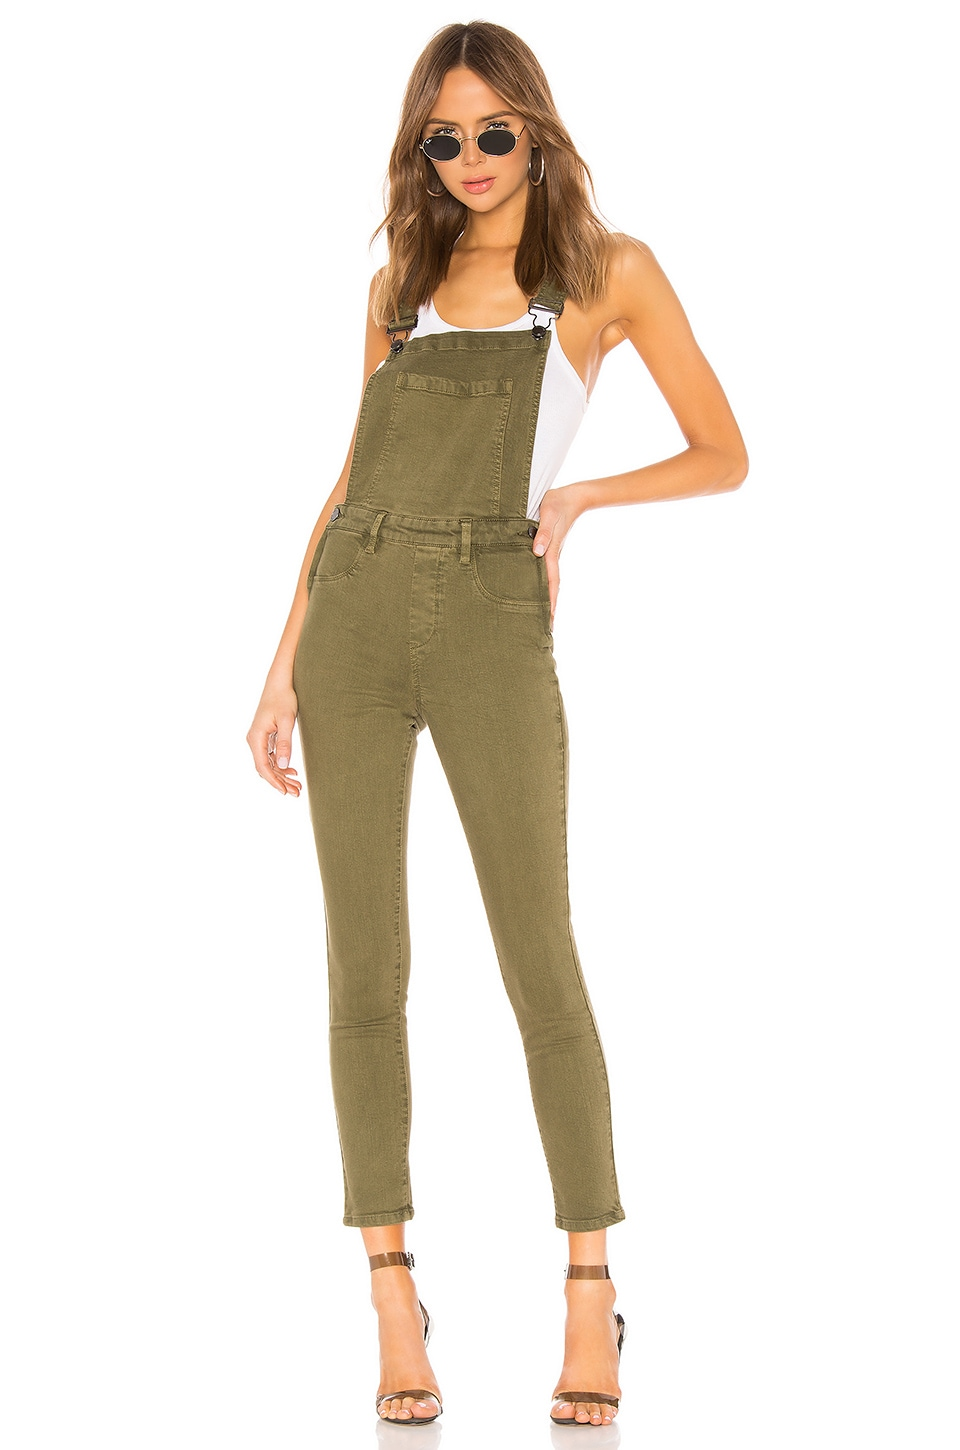 BLANKNYC Fitted Skinny Overall in Apple Jack